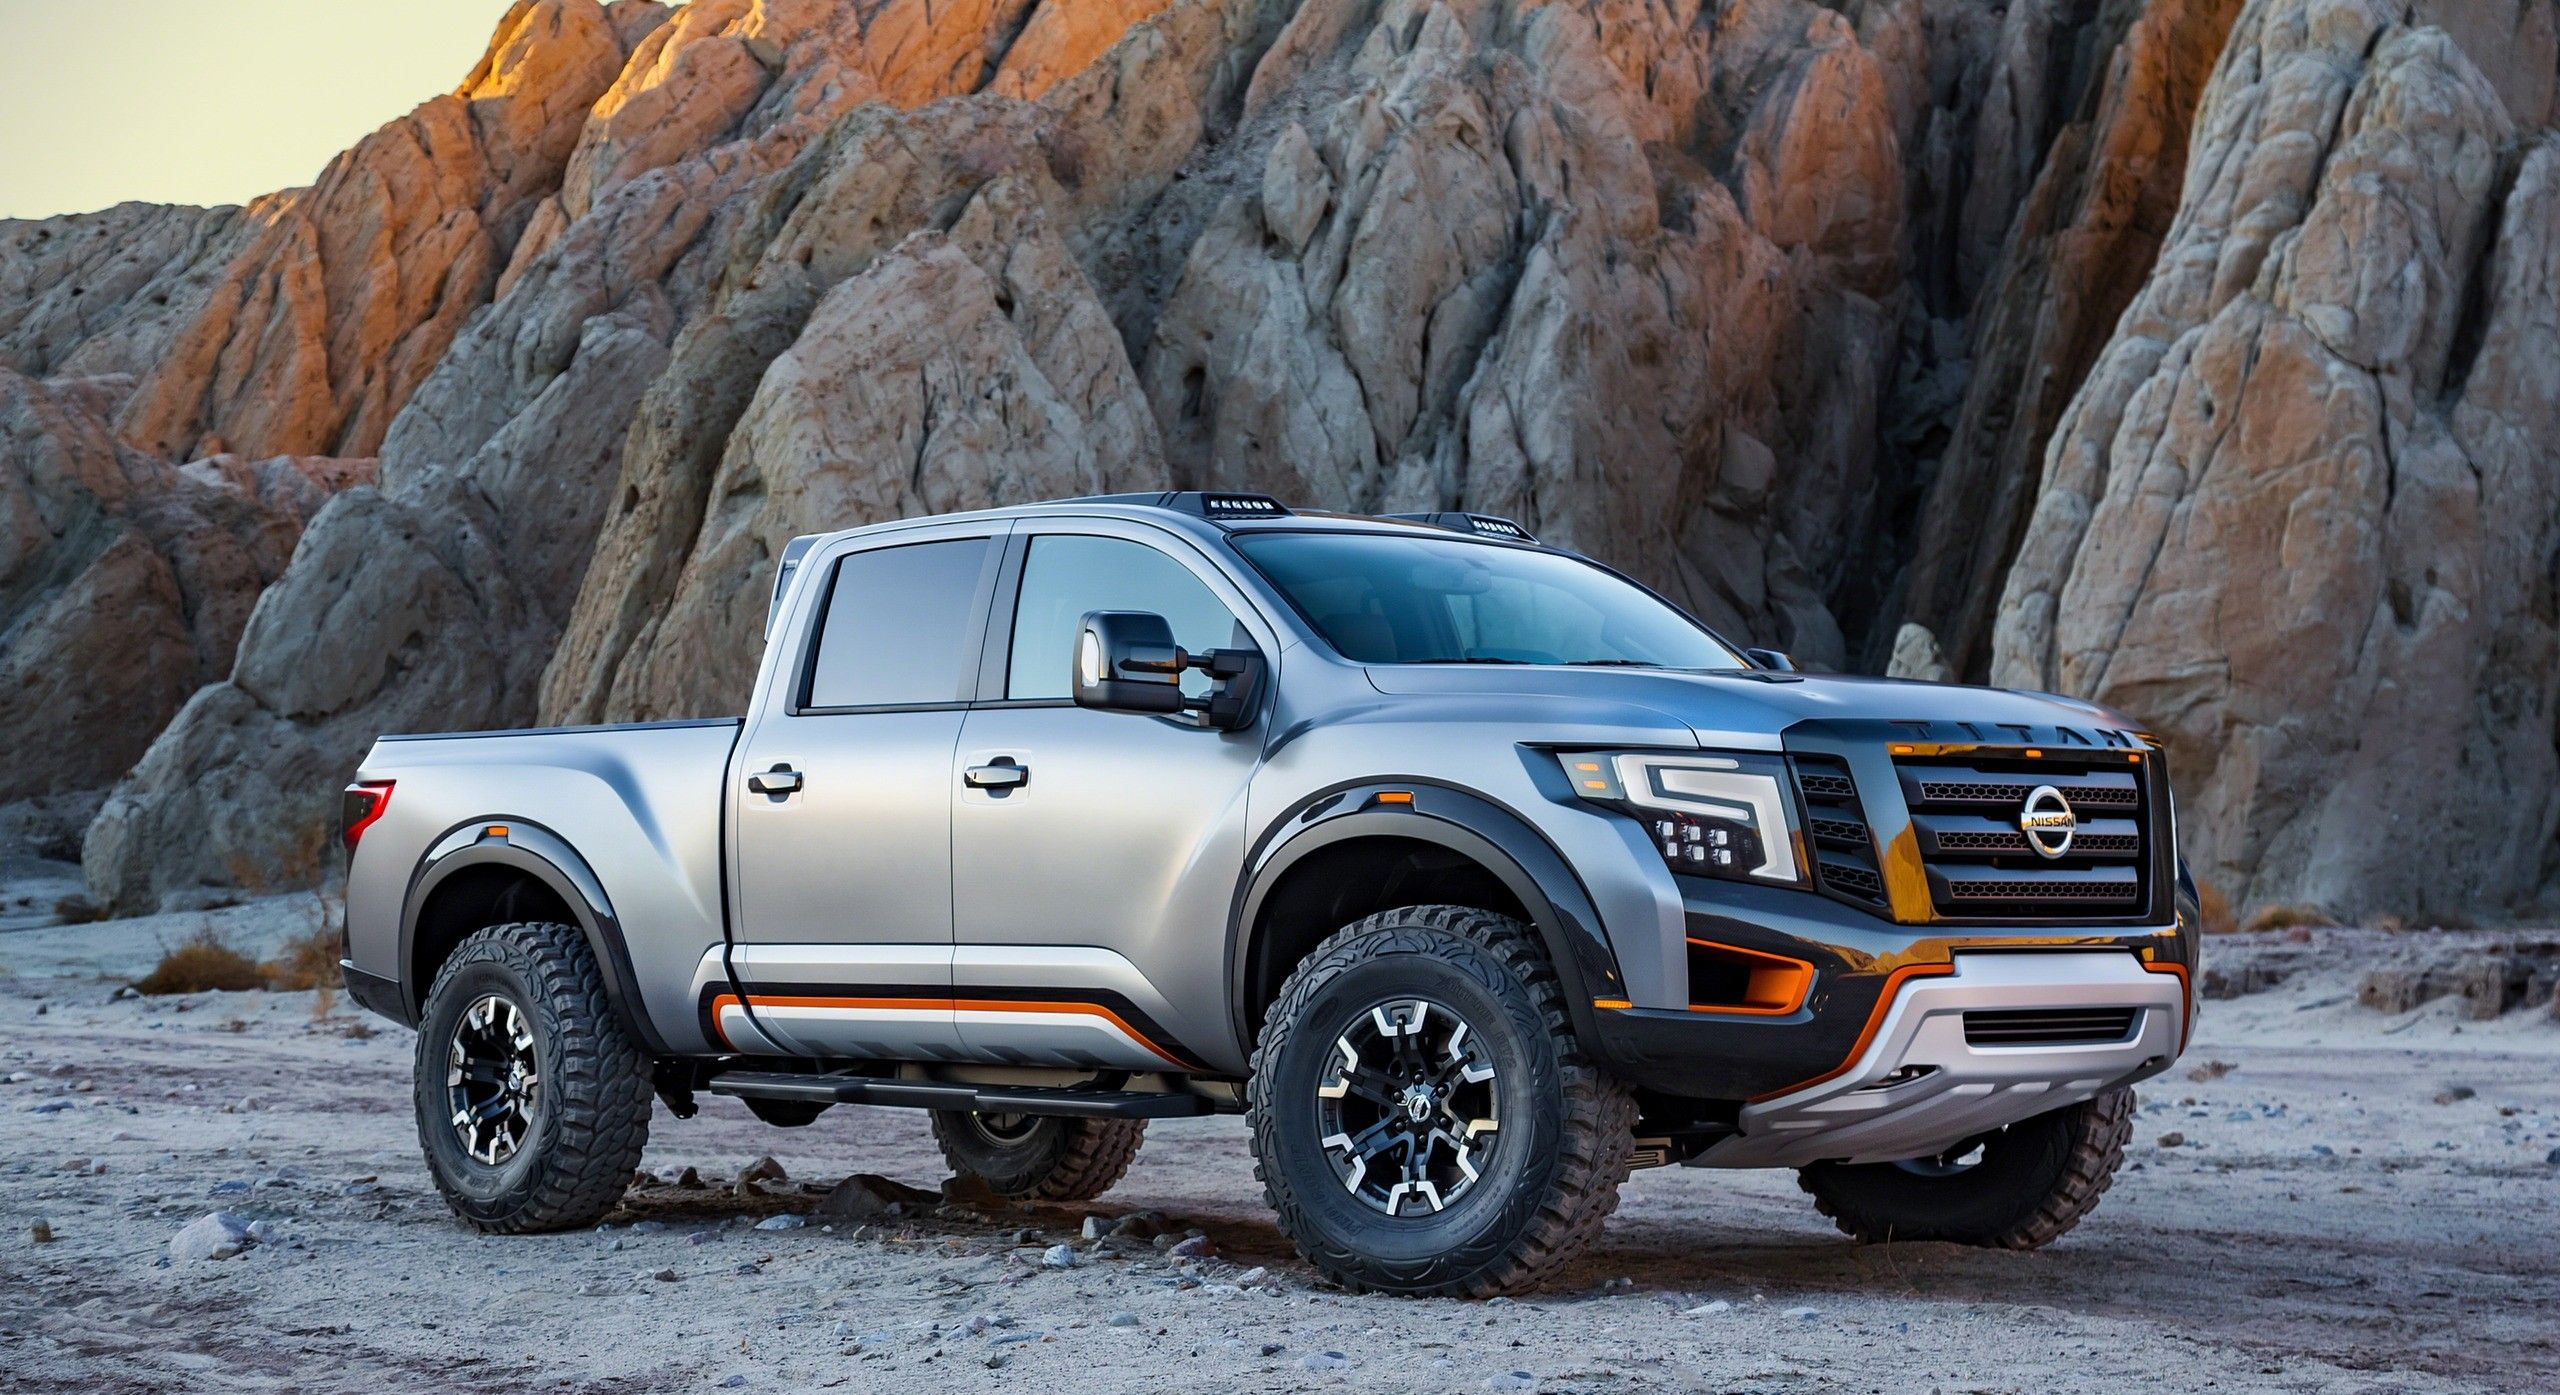 2017 Nissan Titan Warrior Concept.    http://nissannews.com/en-US/nissan/usa/releases/nissan-titan-warrior-concept-makes-world-debut-at-the-2016-north-american-international-auto-show